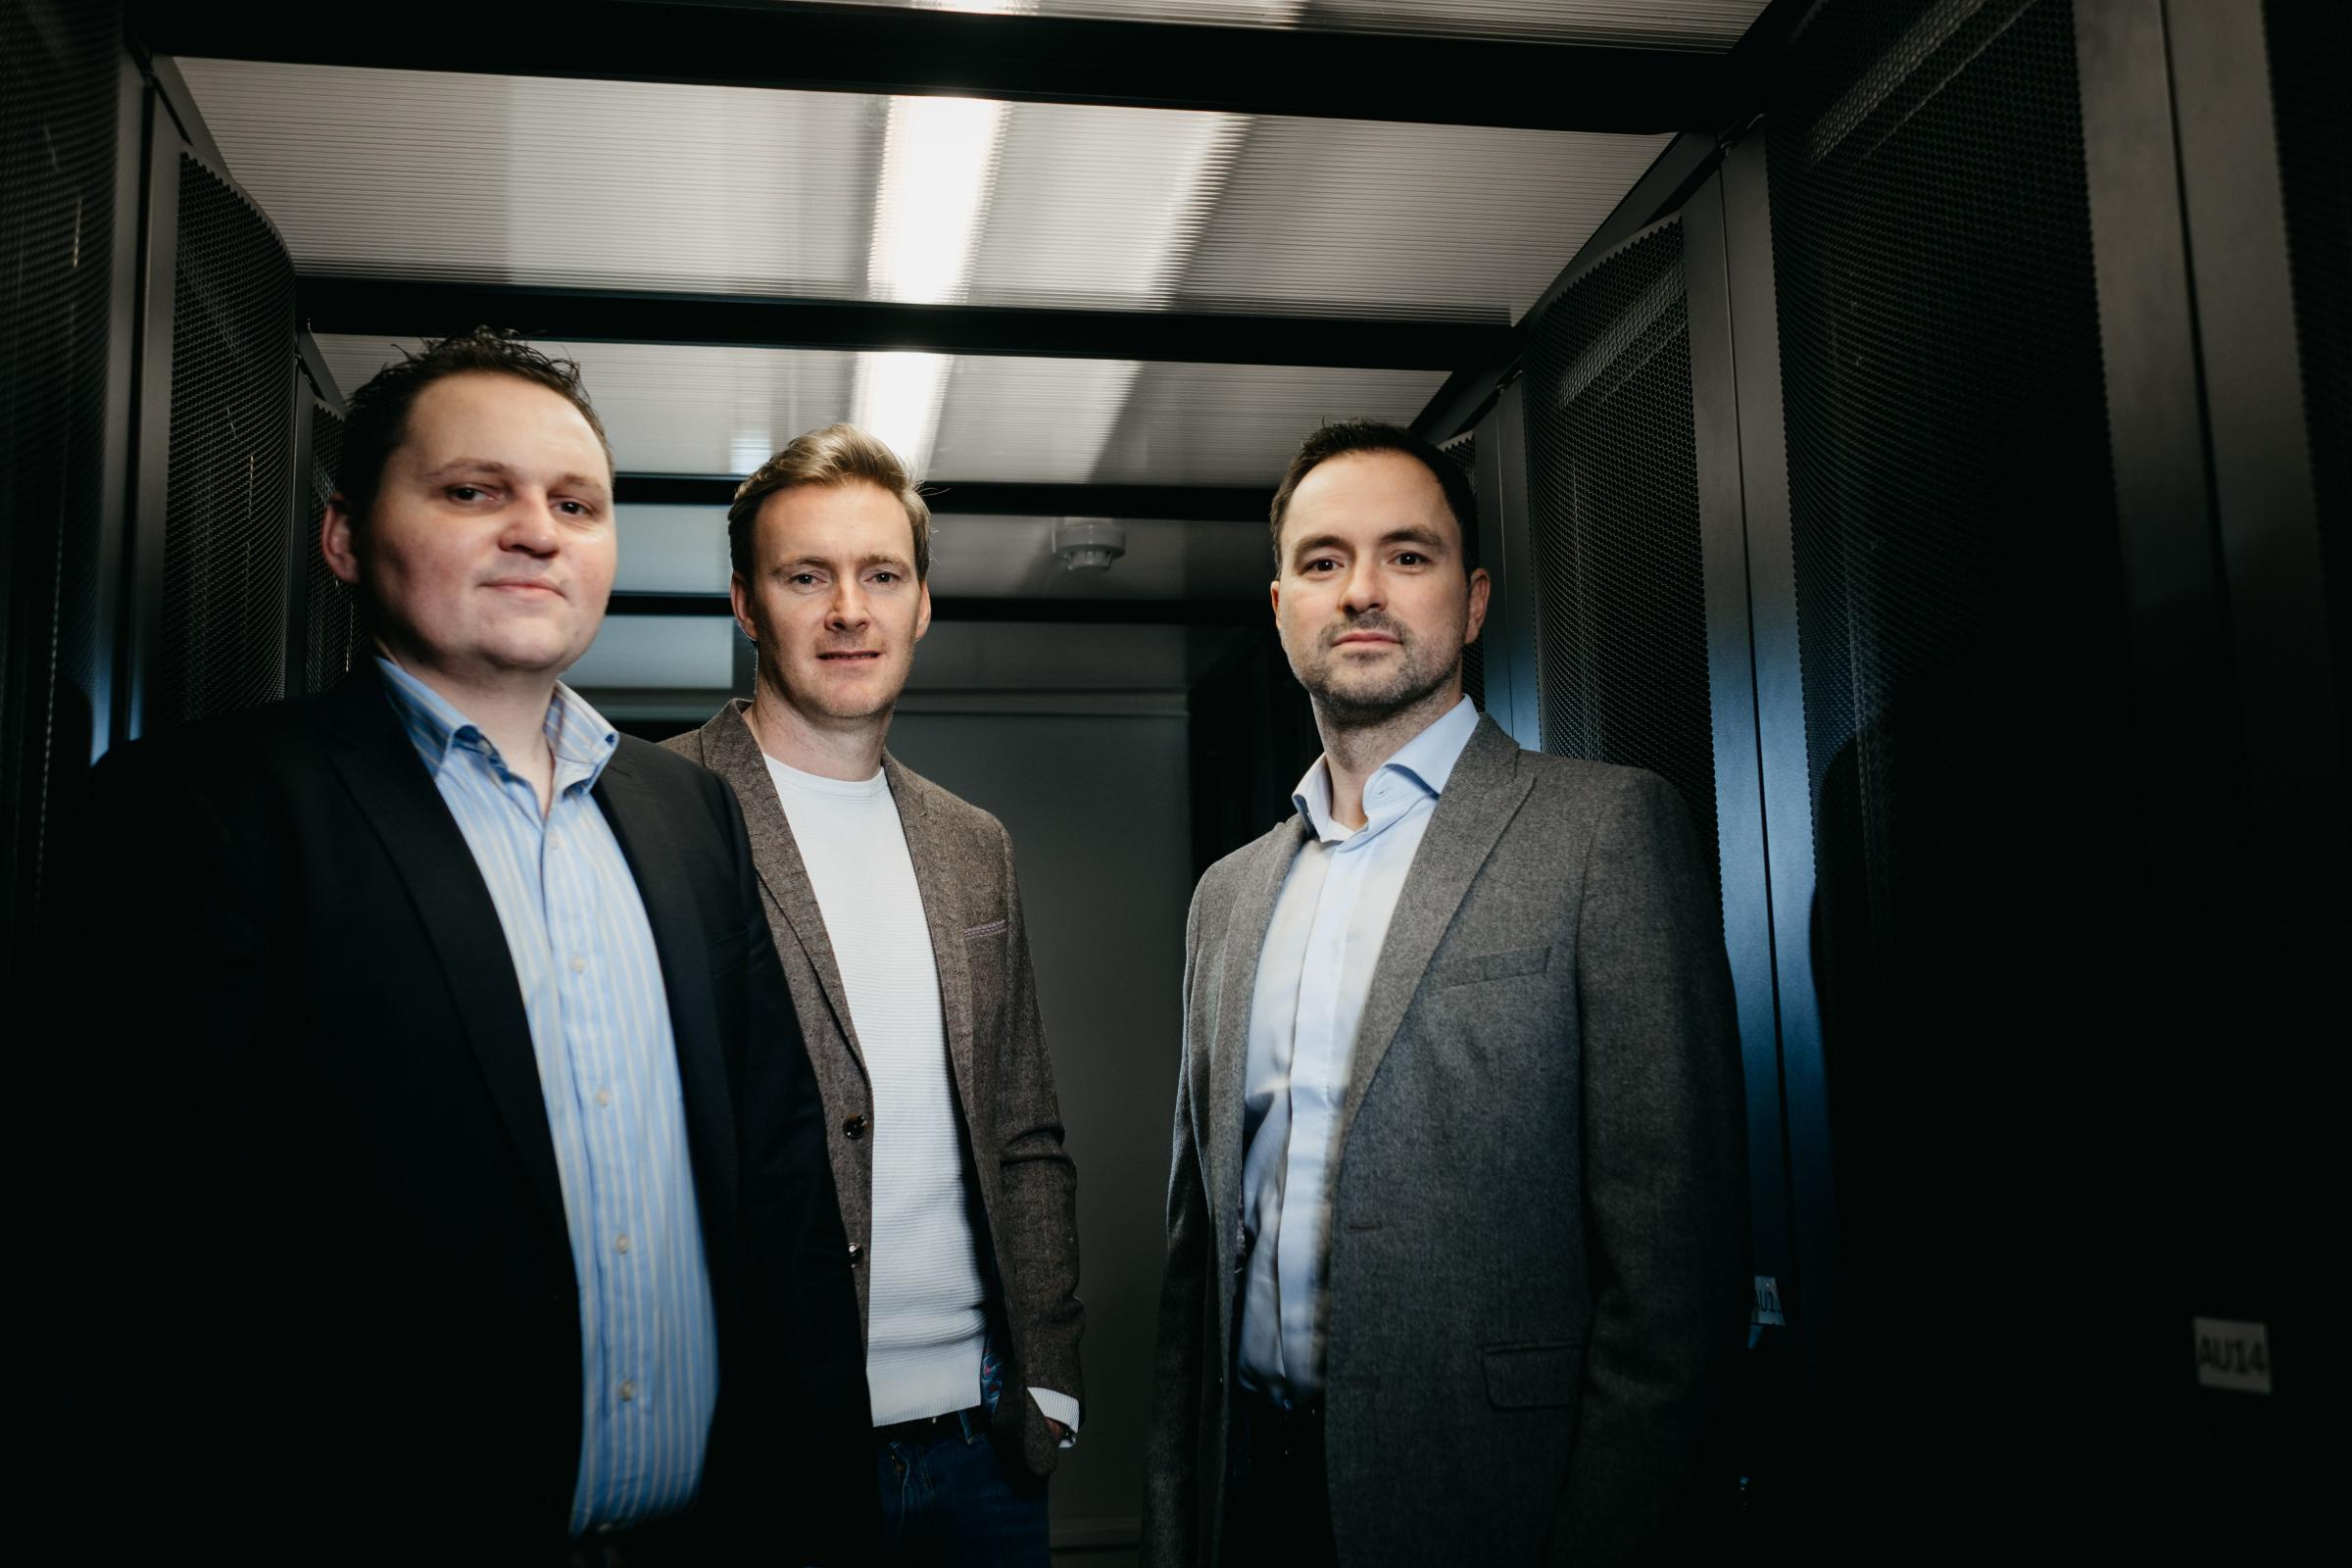 The founders of Cudo Ventures, among Dorset's new tech firms